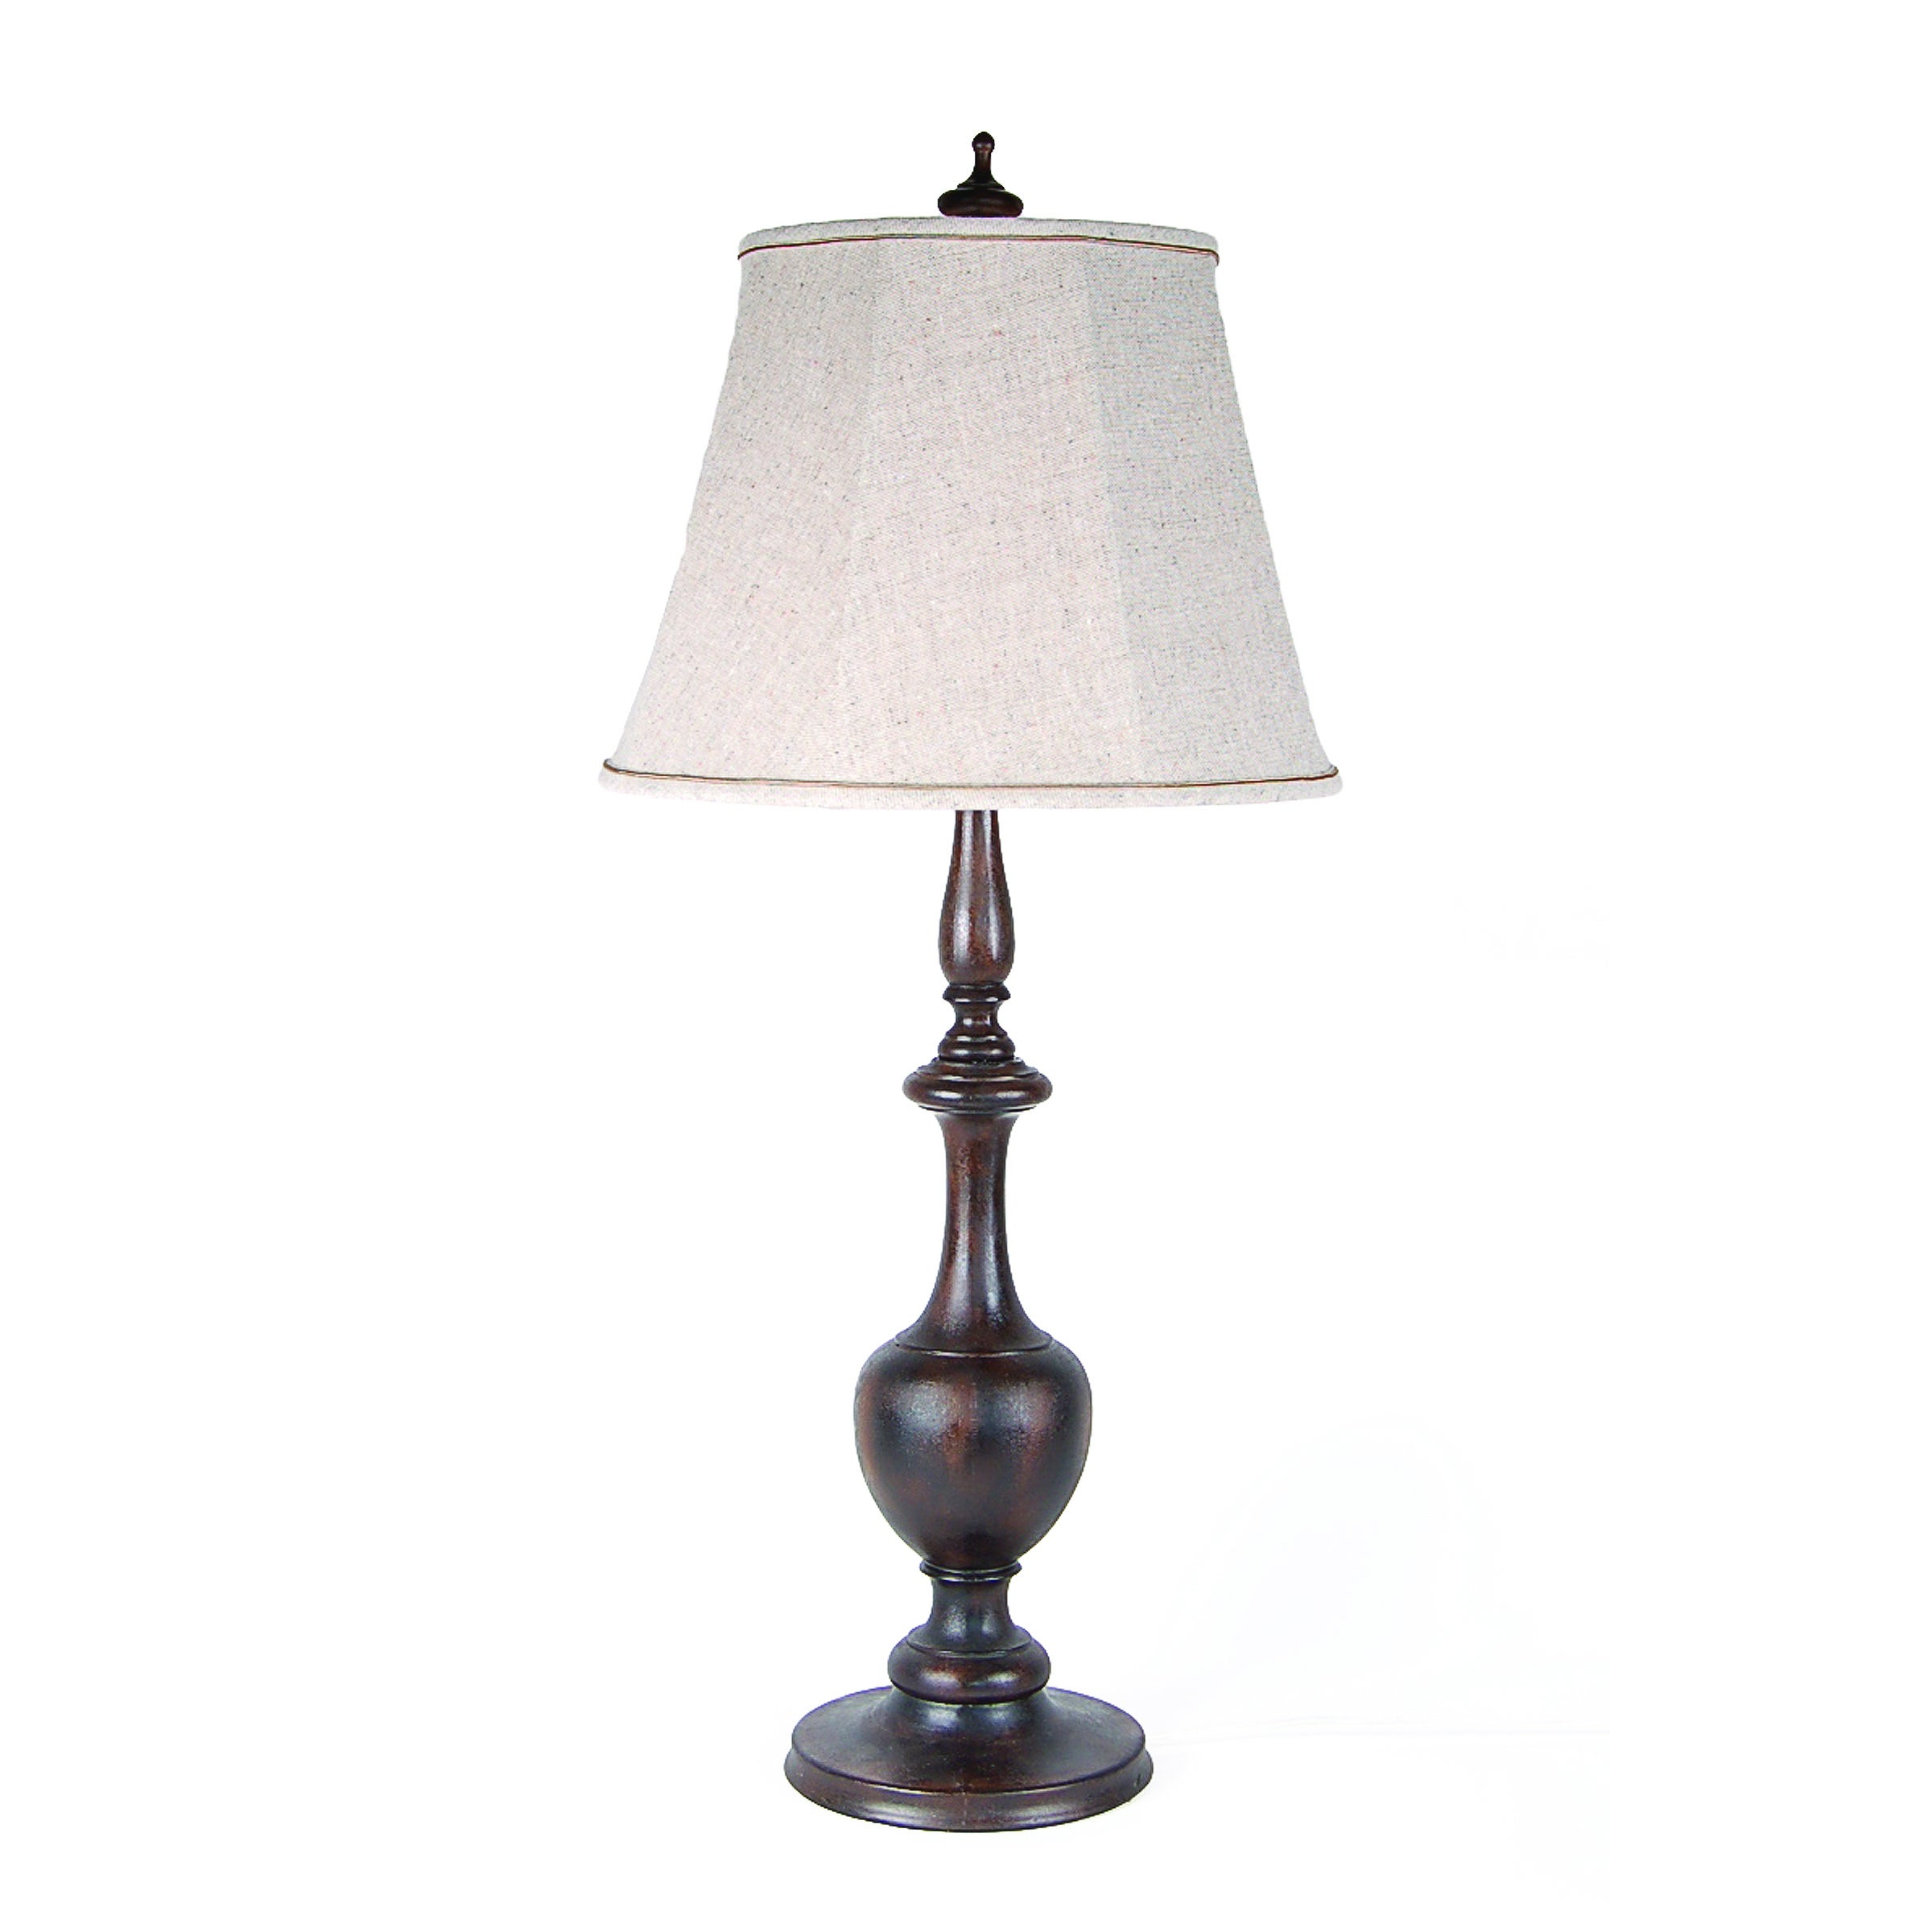 Somette Piedmont Tall Table Lamp